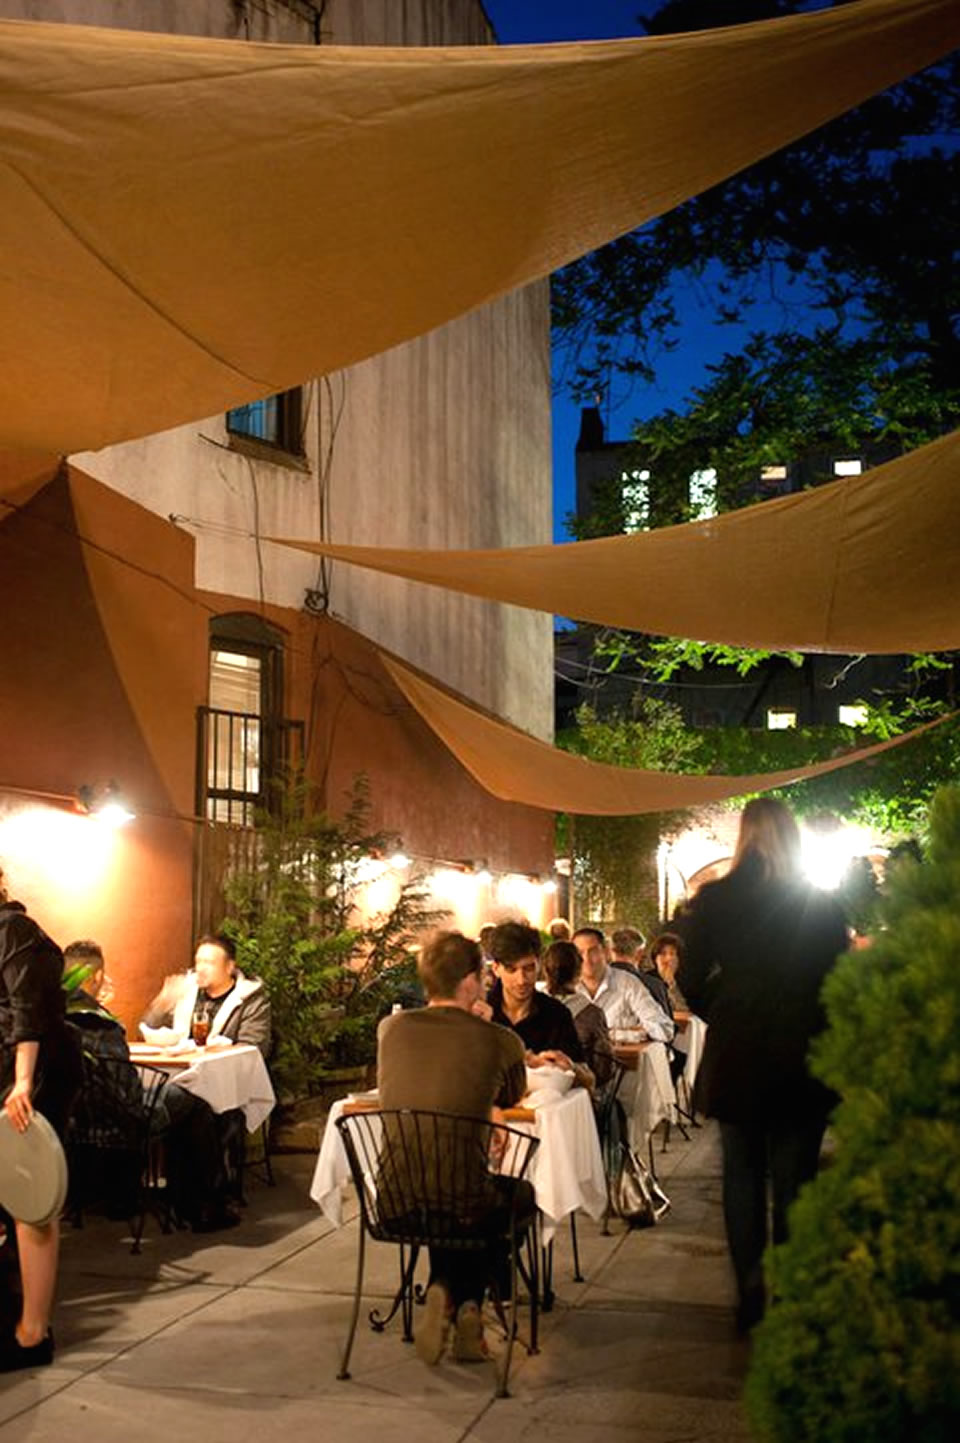 Outdoor-Garden-Patio-Fine-Dining-Hospitality-of-Benchmark-Restaurant-Brooklyn.jpg